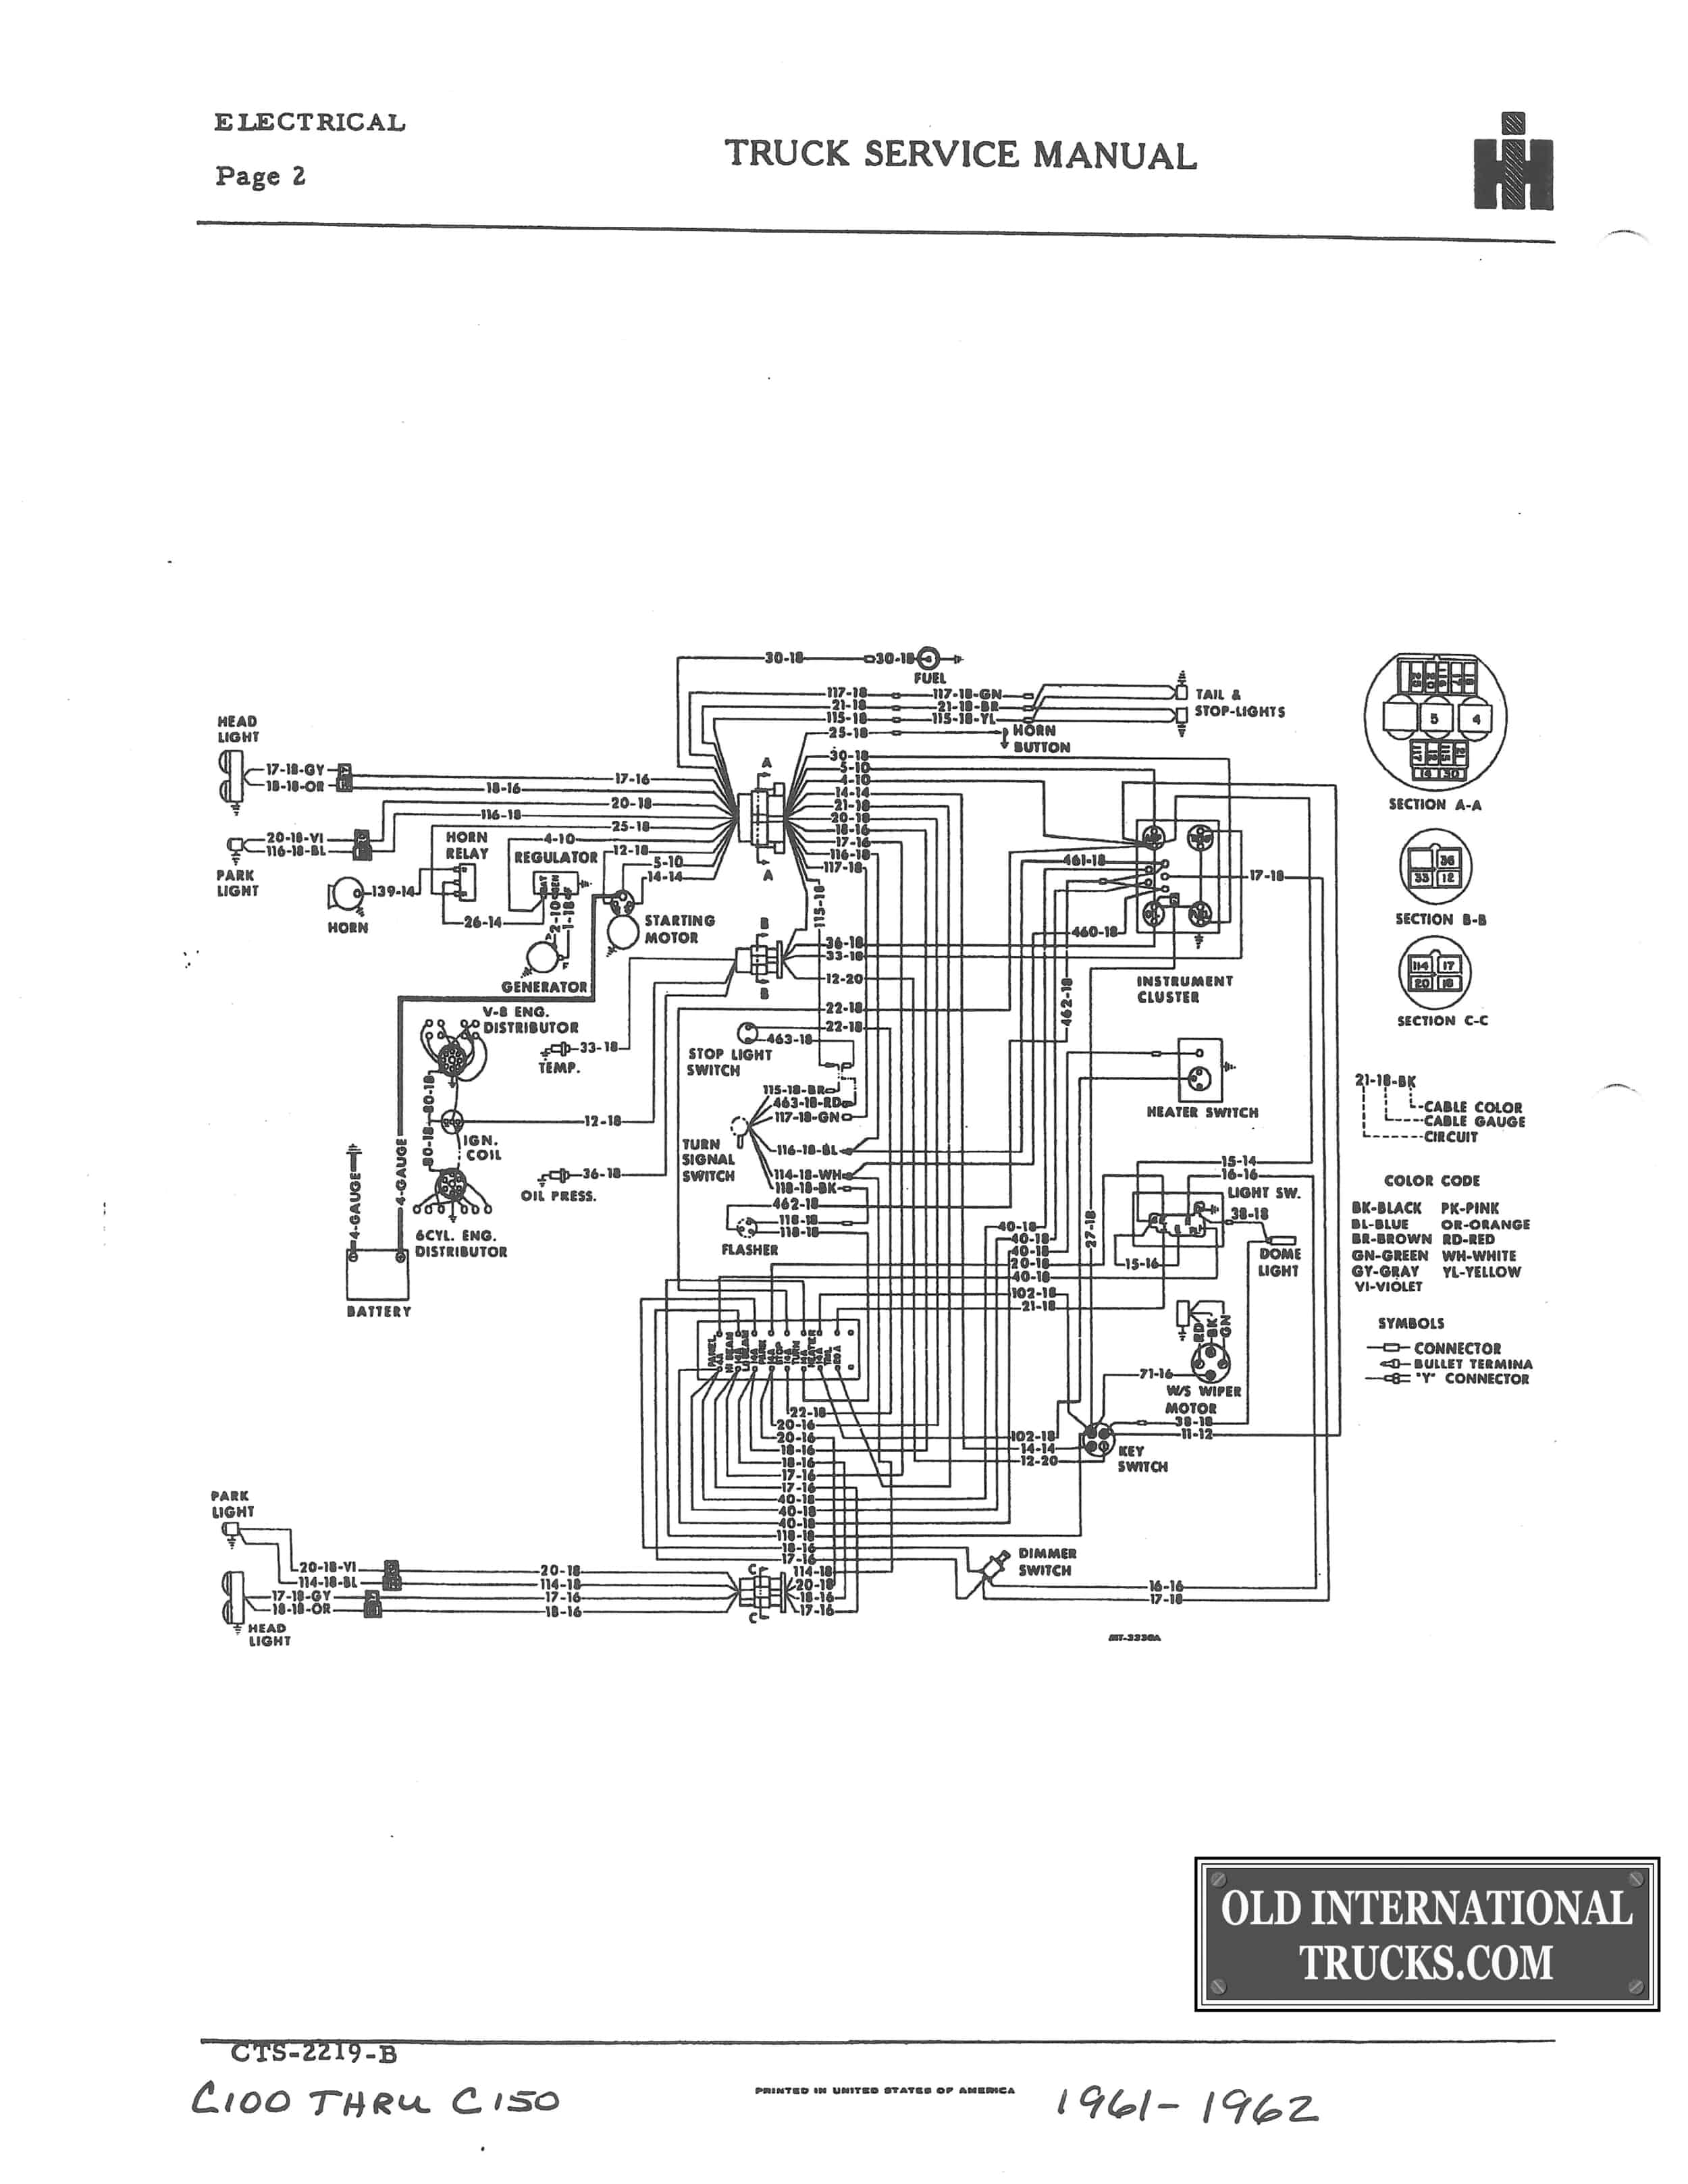 wiring diagrams • old international truck parts  old international truck parts